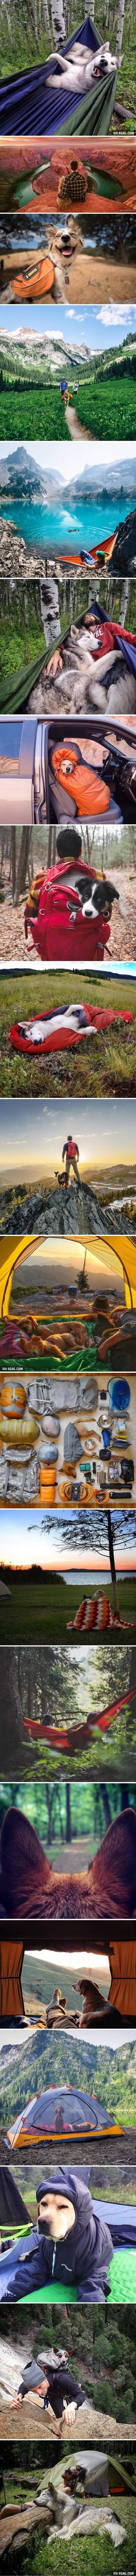 Camping With Dogs Is The Most Wonderful Thing Ever-- that 3rd picture... <3!